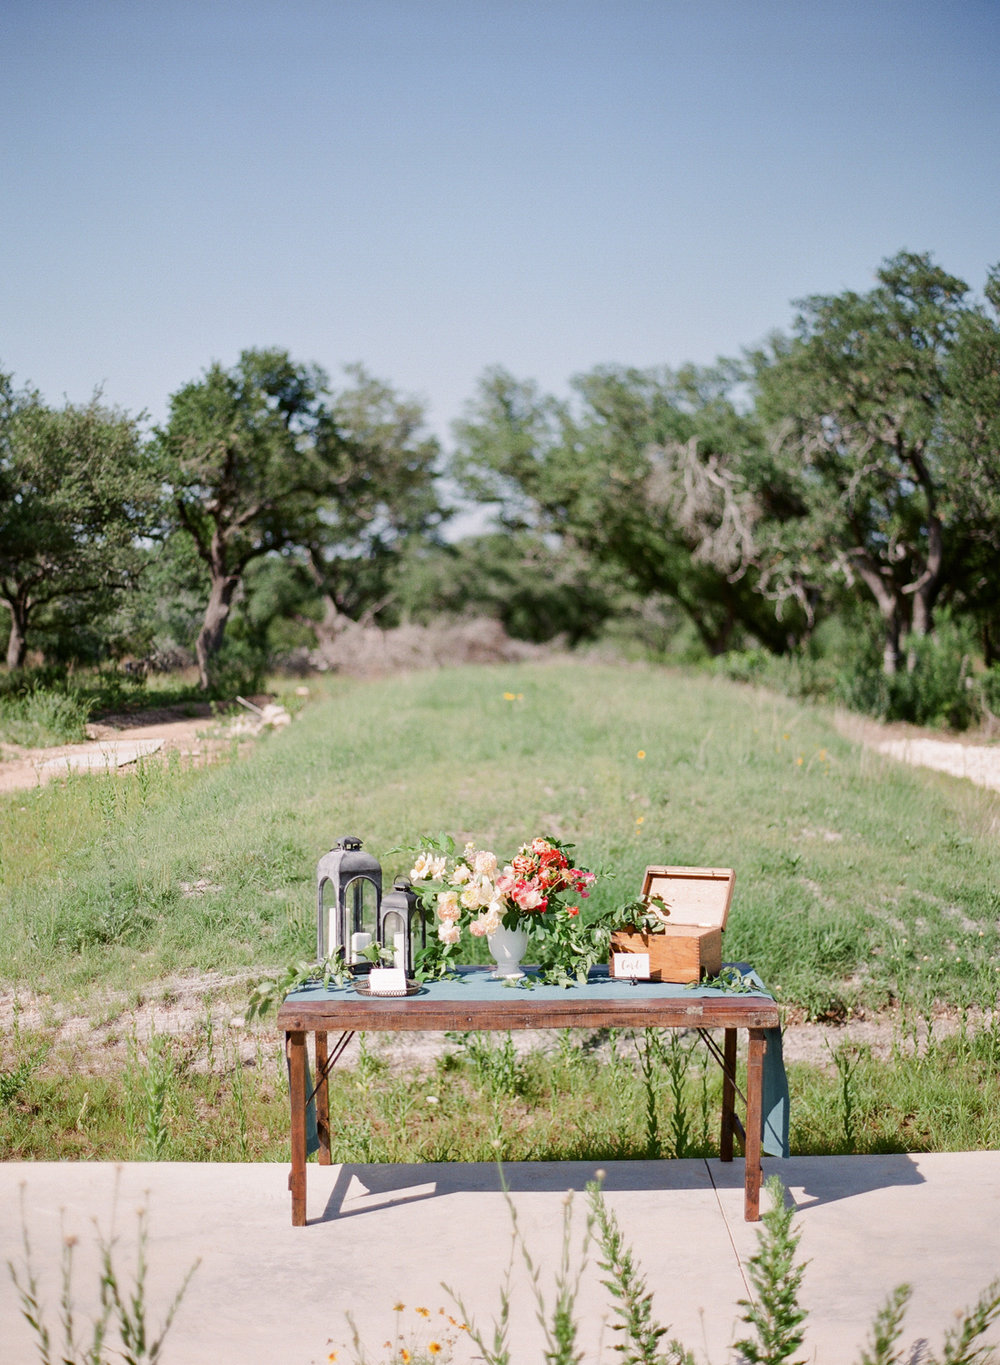 PROSPECT_HOUSE_WEDDING_AUSTIN_TX_BY_MATTHEW_MOORE_PHOTOGRAPHY_00261.jpg